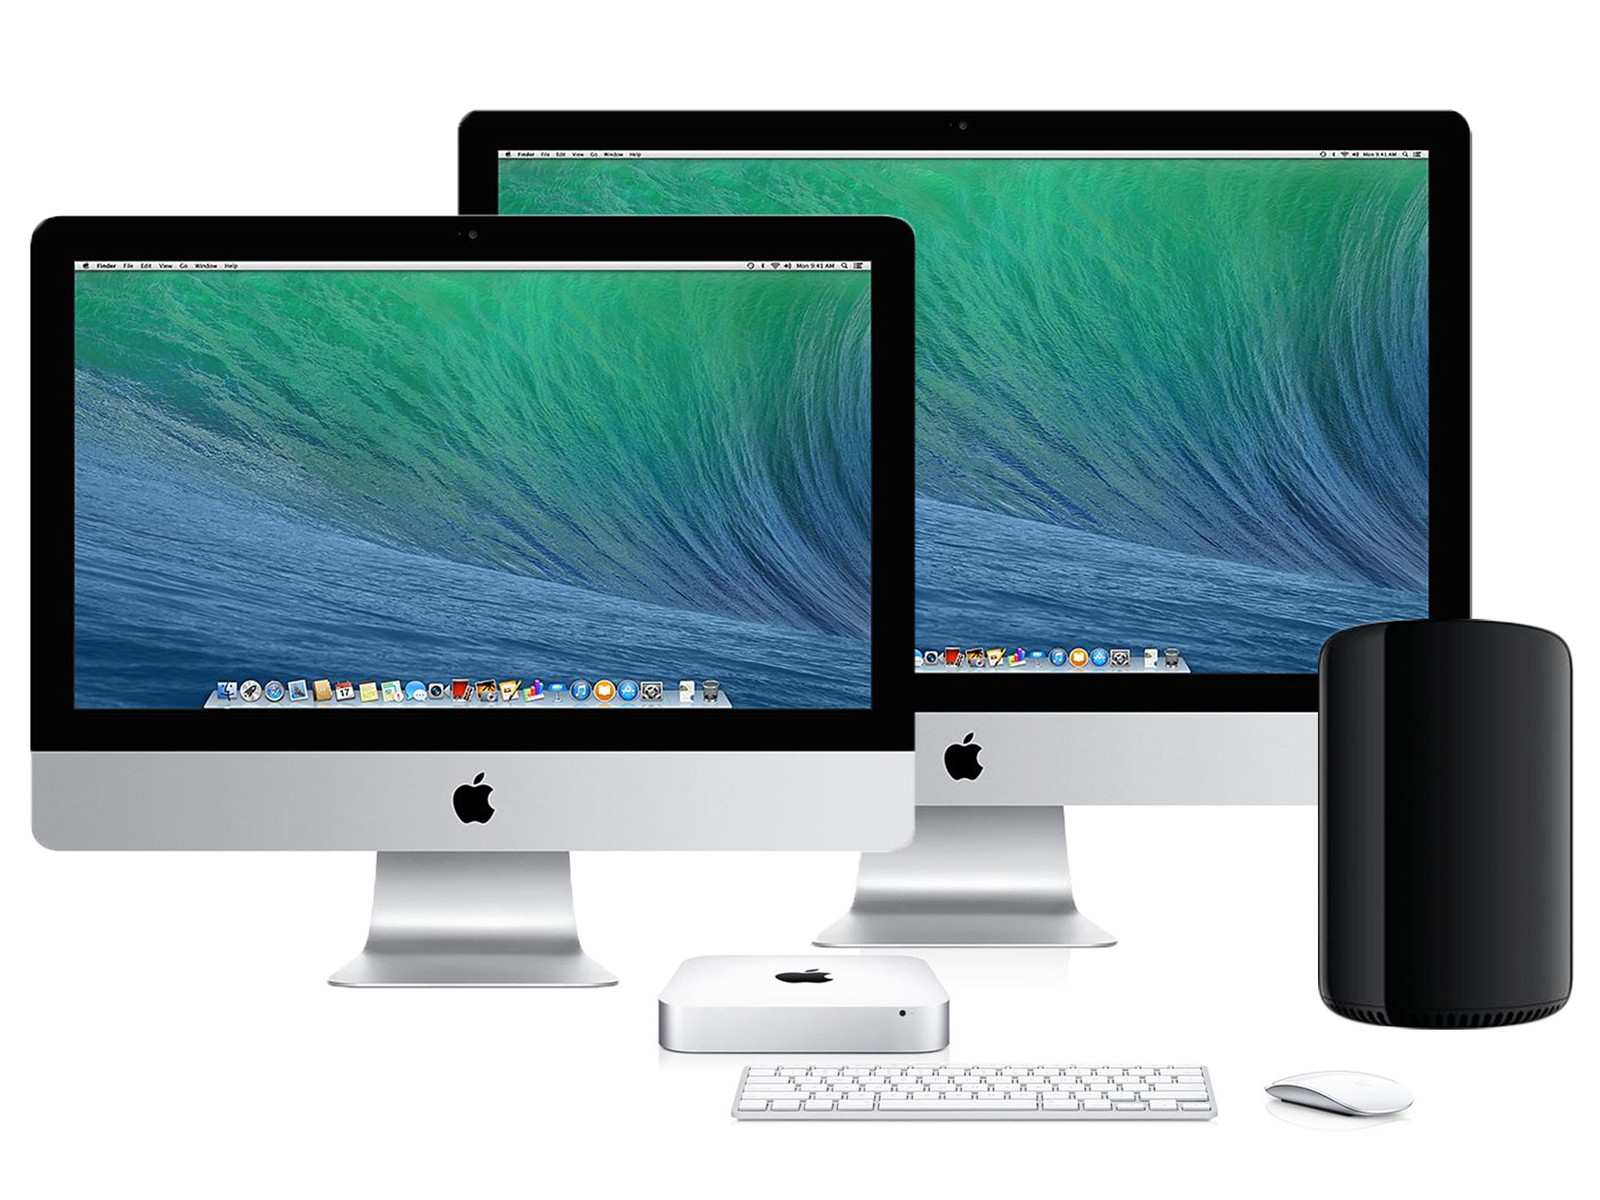 mac_desktops_apple_art.jpg.b656b11f00884a4561160bca32196d32.jpg